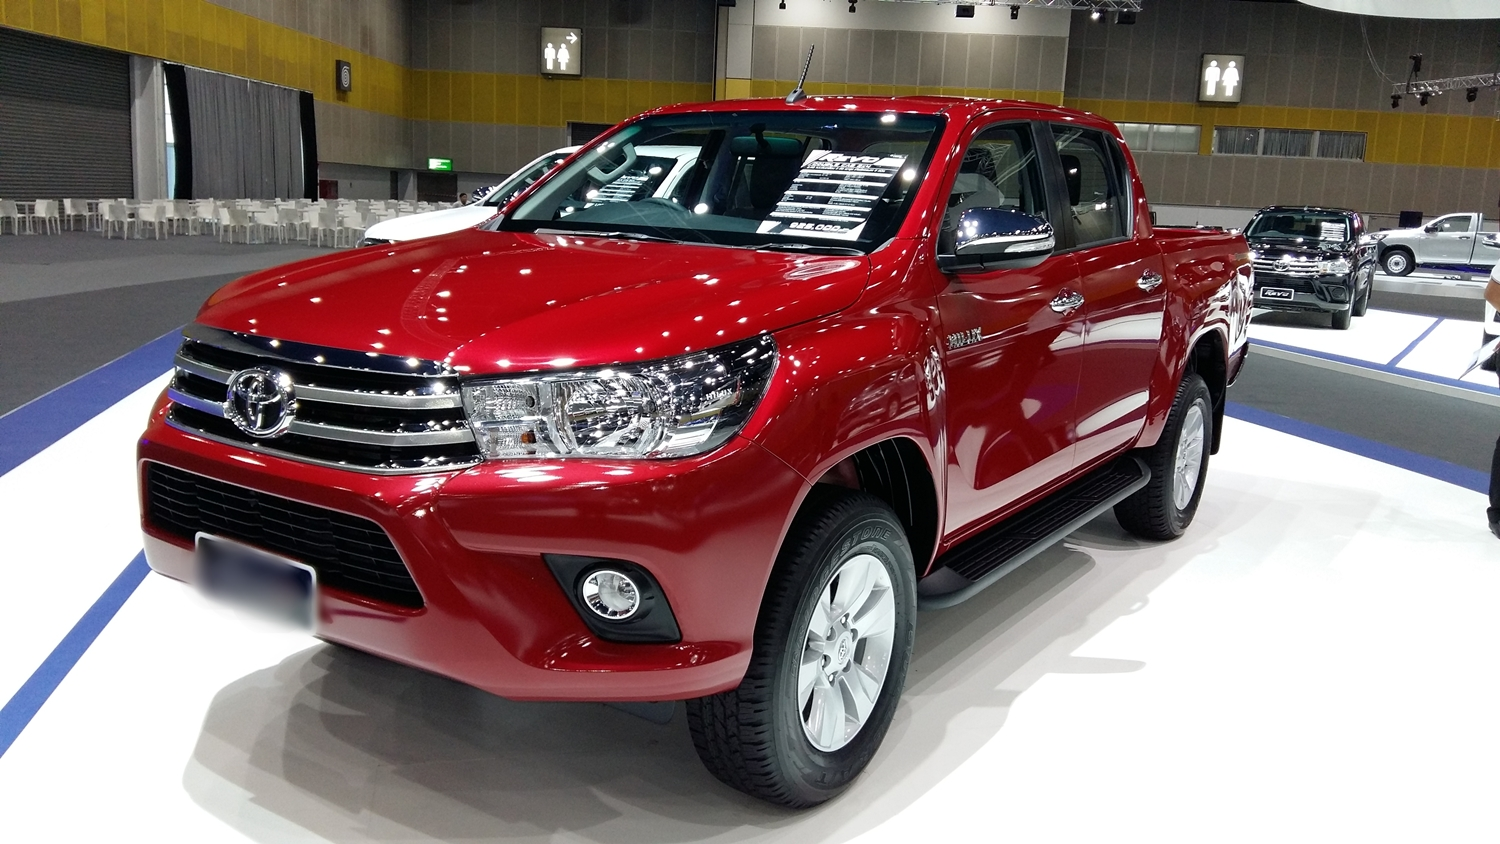 Toyota Hilux 4x4 Double Cab Standard 2019 Model Features